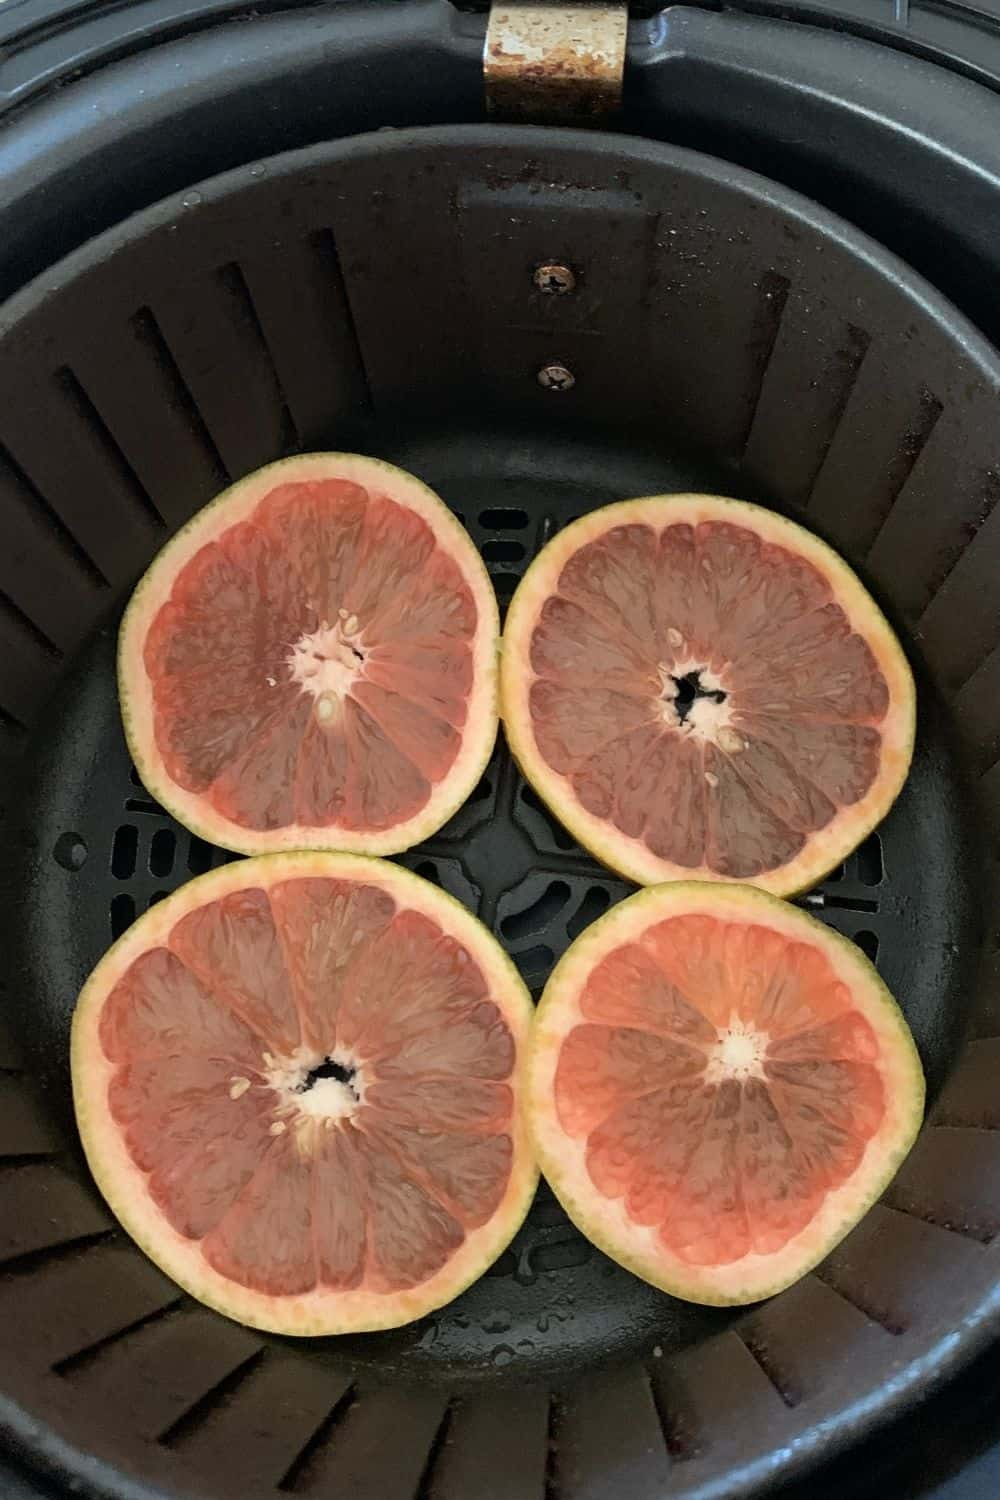 orange slices in the air fryer ready to be dried